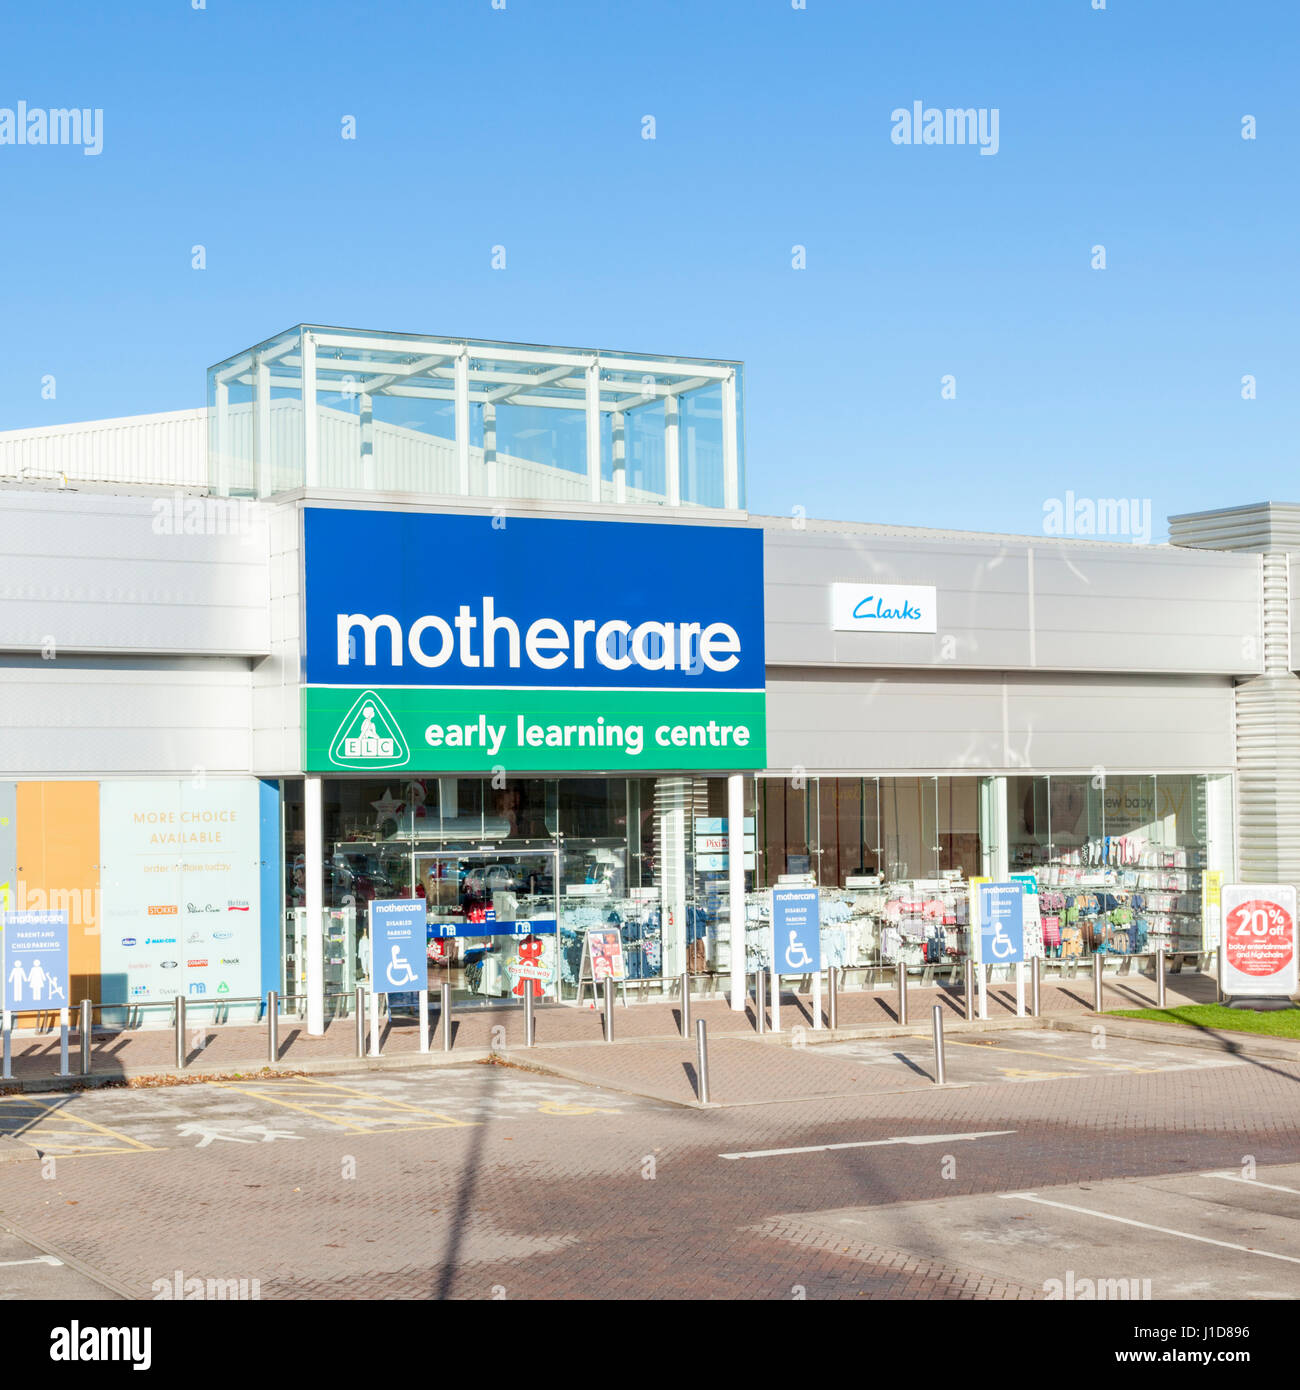 Mothercare and Early Learning Centre stores, Castle Marina Retail Park, Nottingham, England, UK - Stock Image